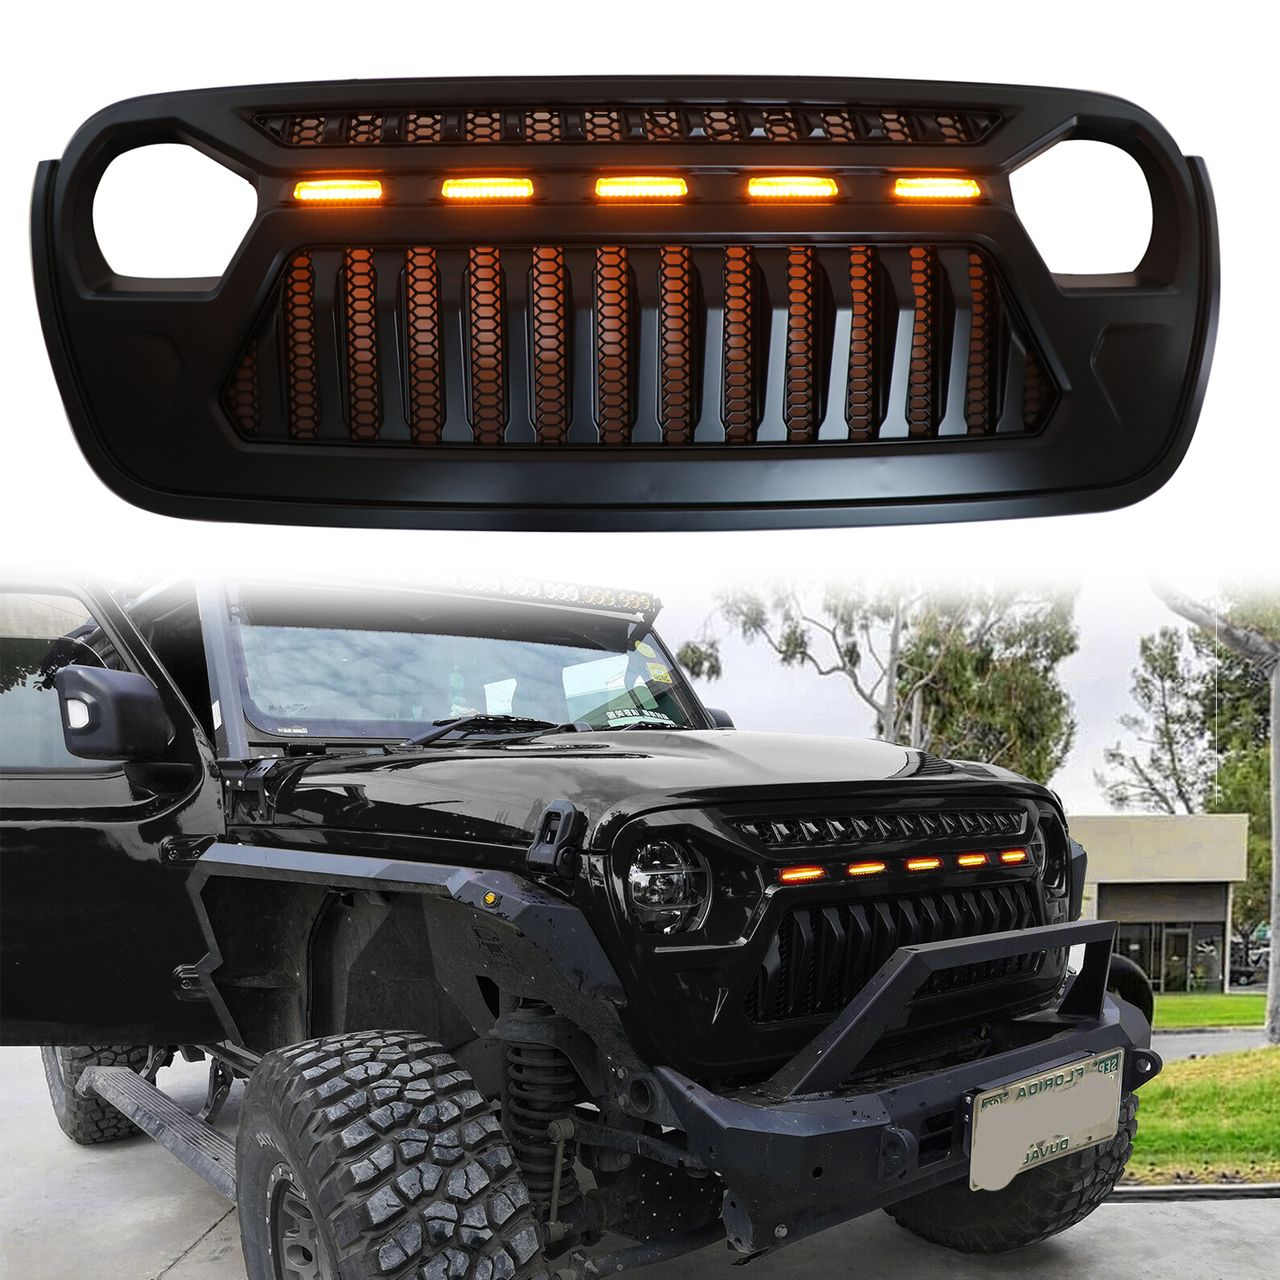 Jeep Wrangler Accessories Jeep Wrangler Accessories Wrangler